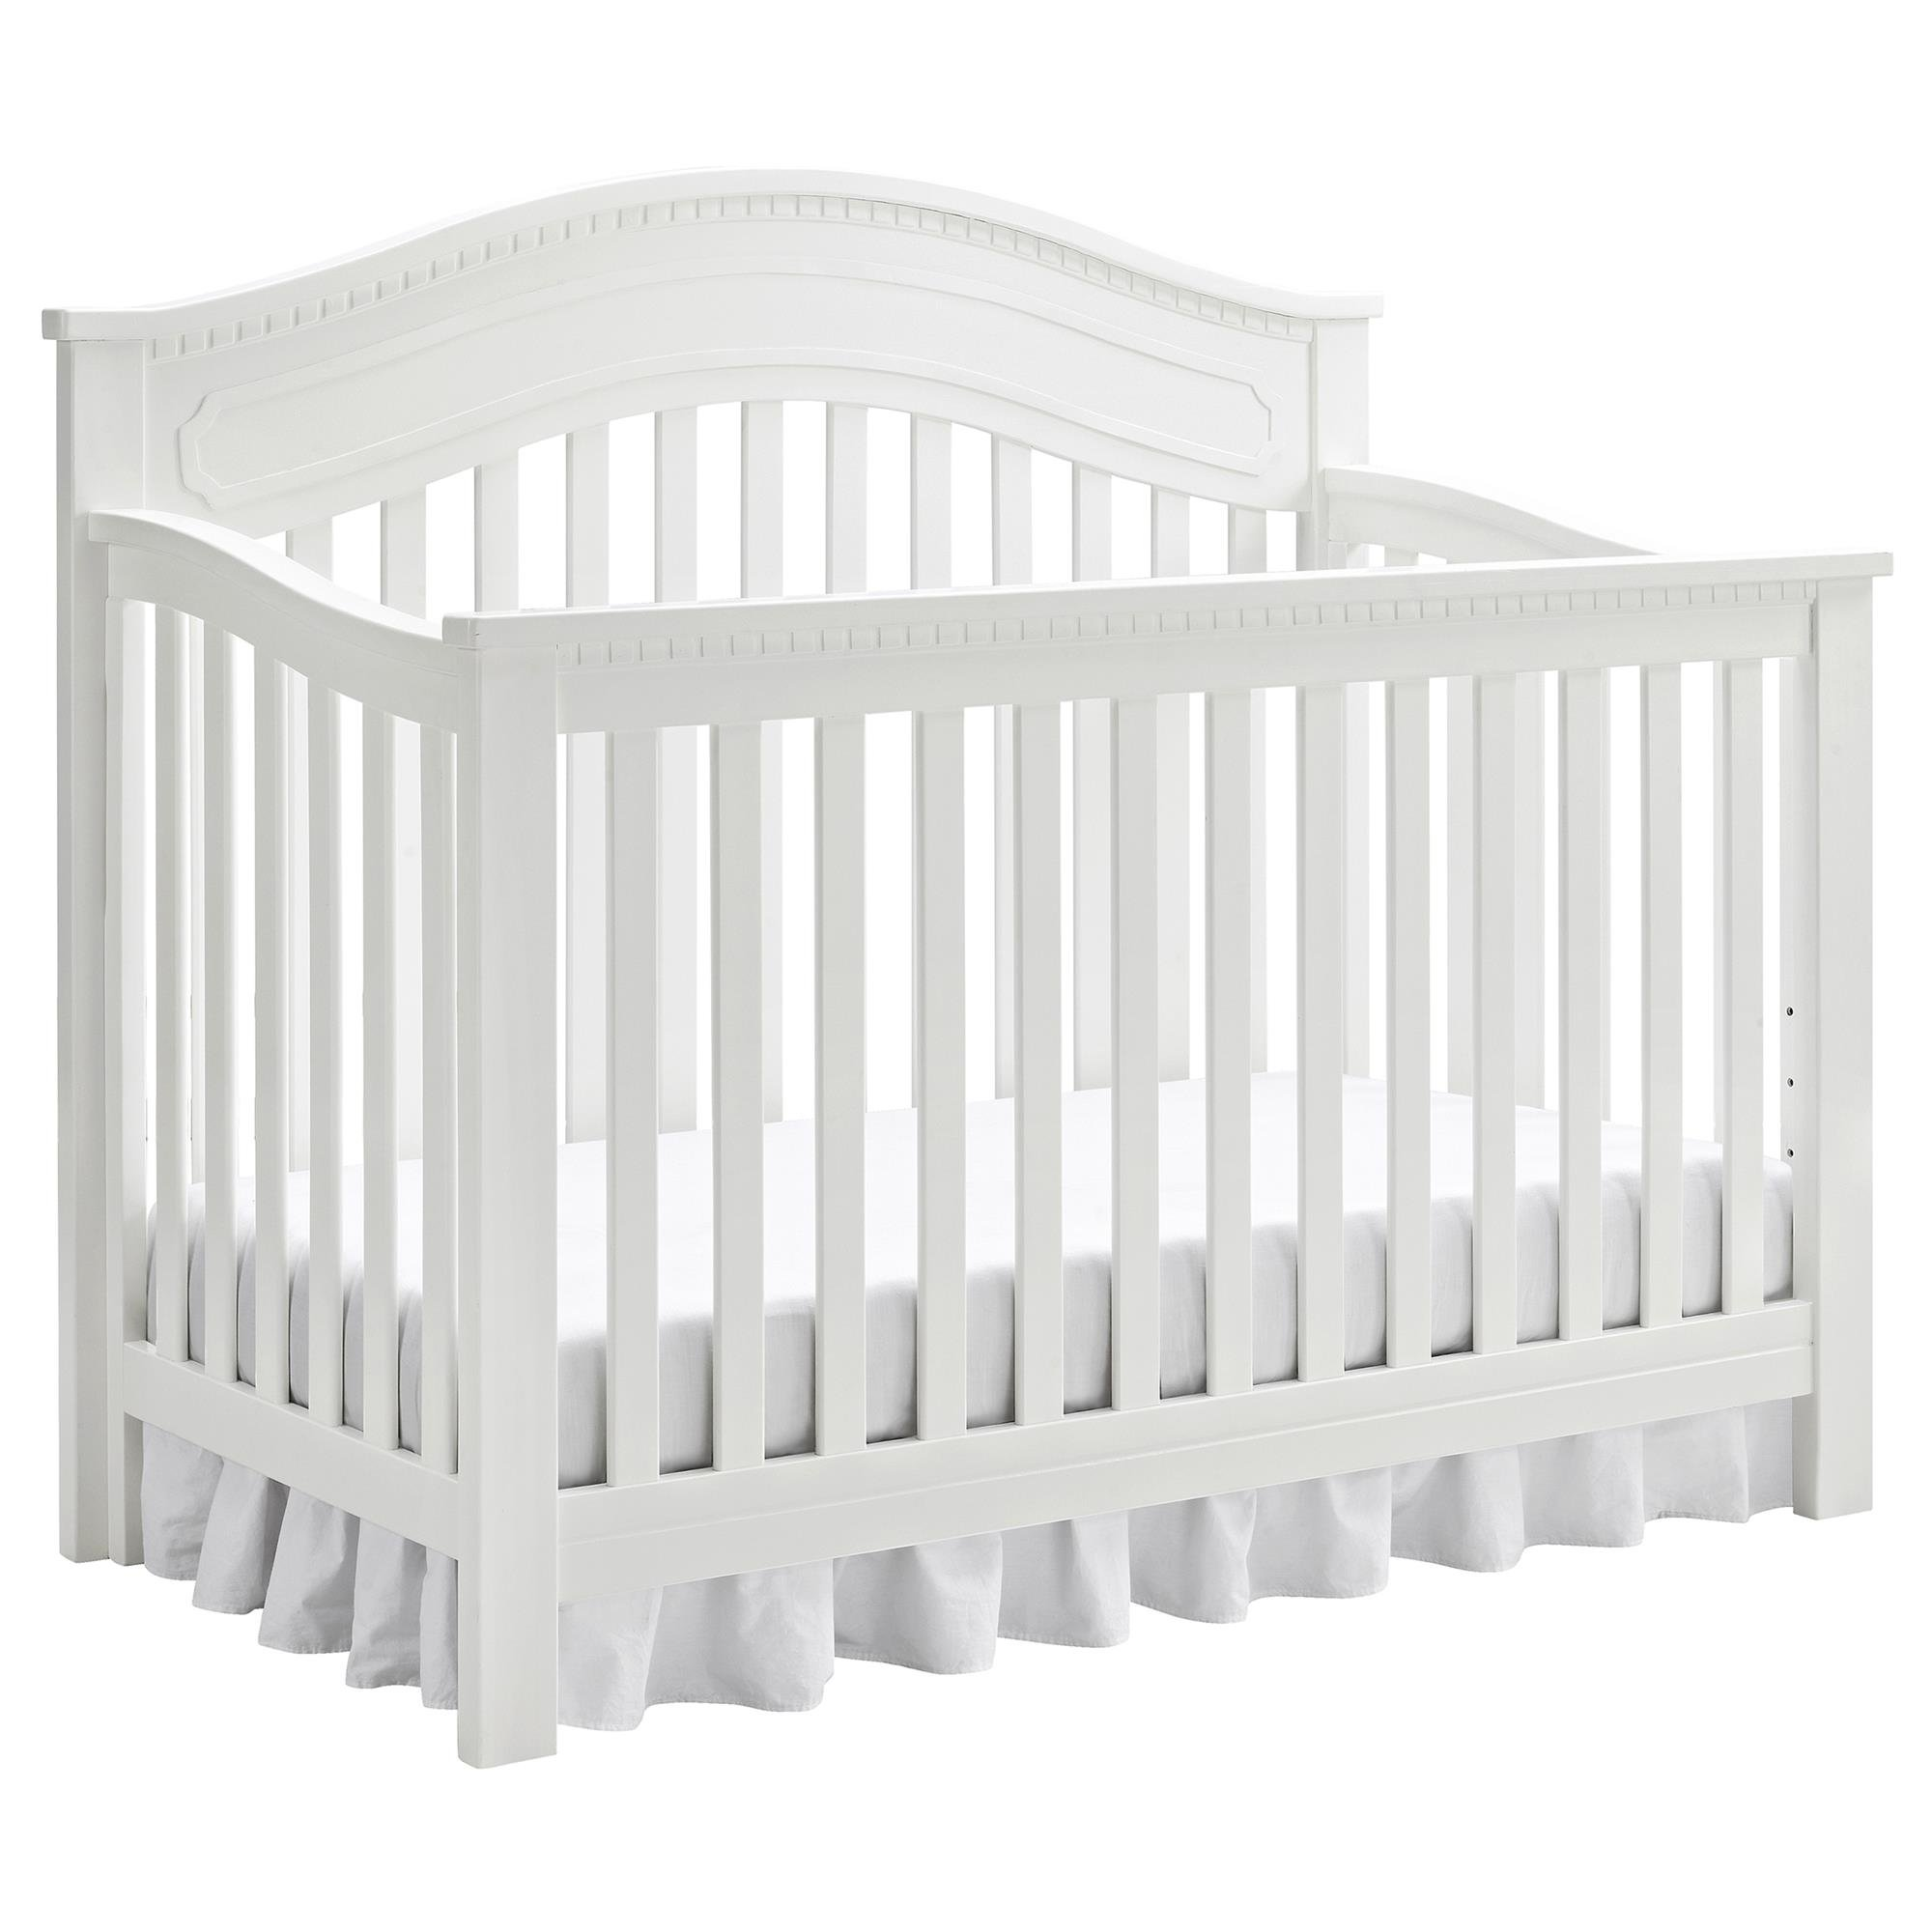 Full Size Conversion Kit Bed Rails for Baby Relax Edgemont, Miles & Rivers Cribs by Dorel Living - White by CC KITS (Image #7)